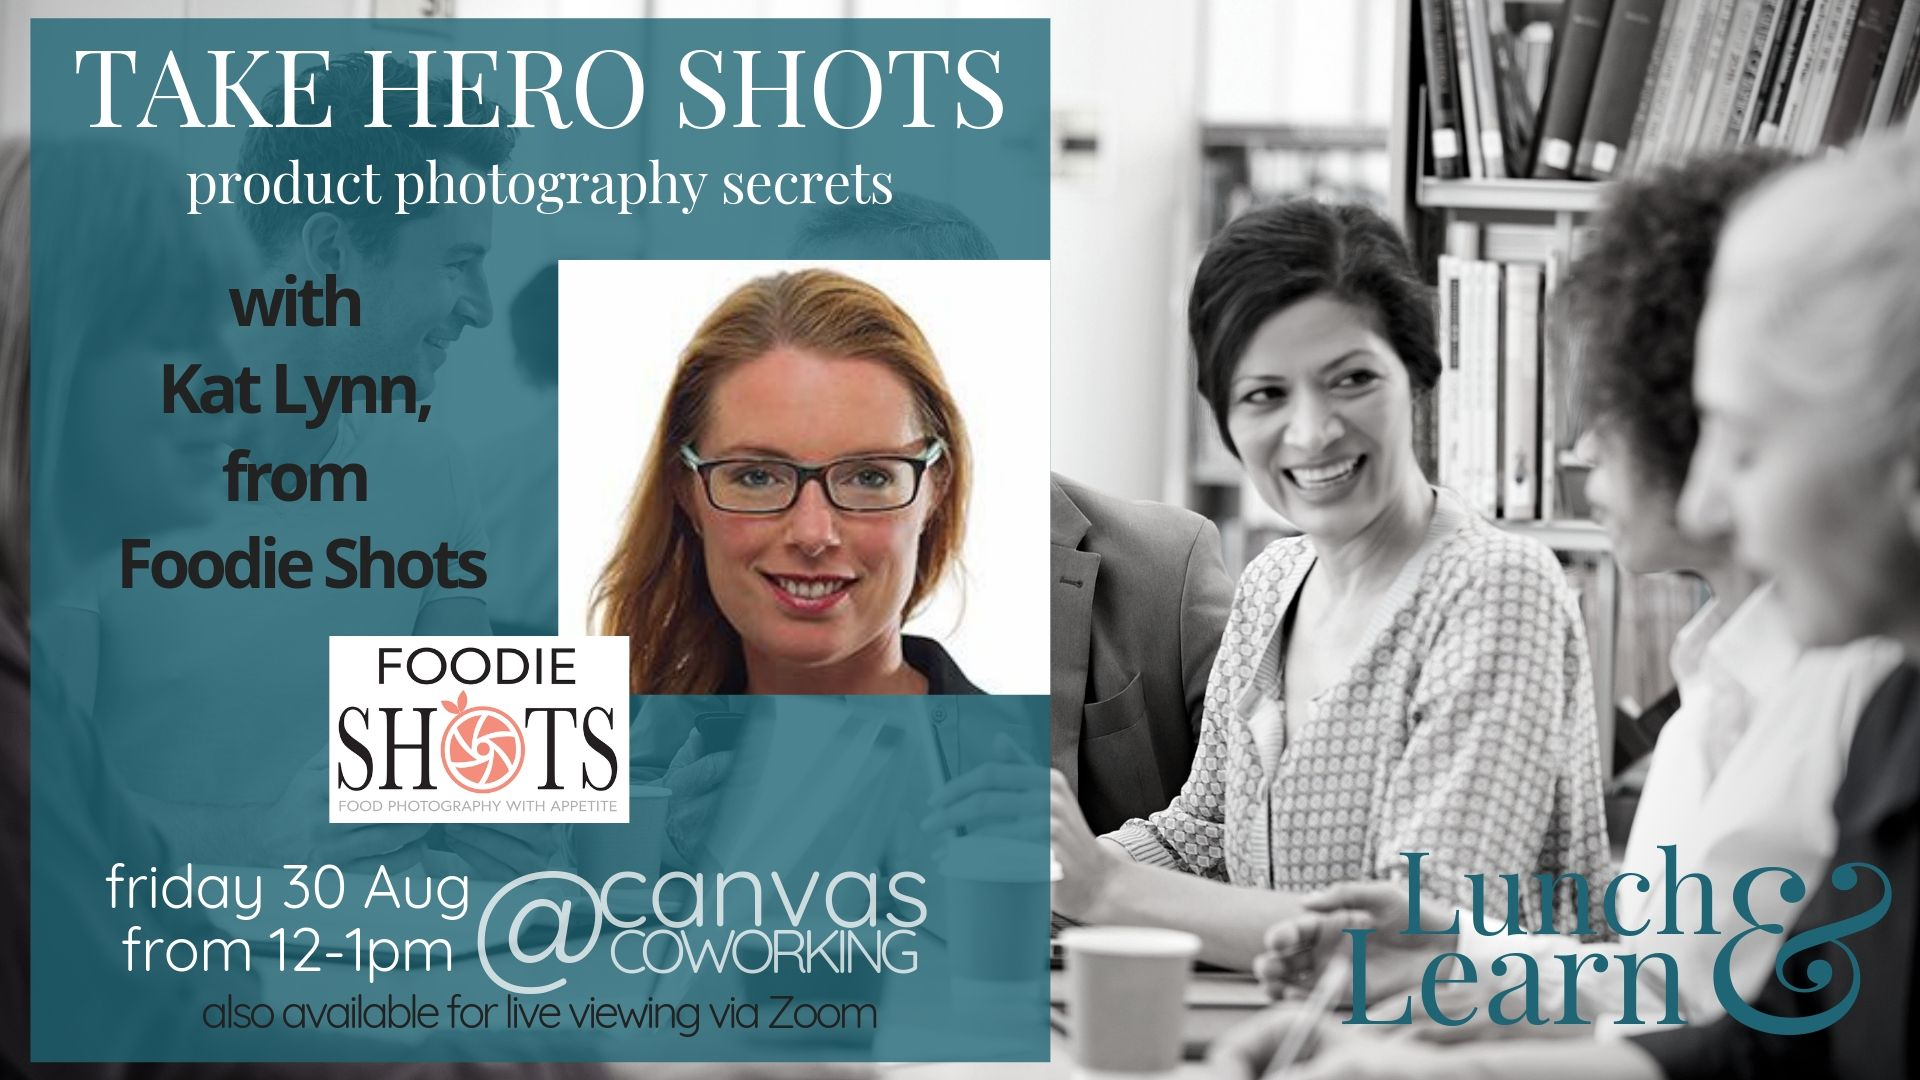 Take Hero Shots - Product Photography Secrets with Kat Lynn from Foodie Shots. Presenting Lunch & Learn on Friday 30 August 2019 at 12pm at Canvas Coworking Toowoomba